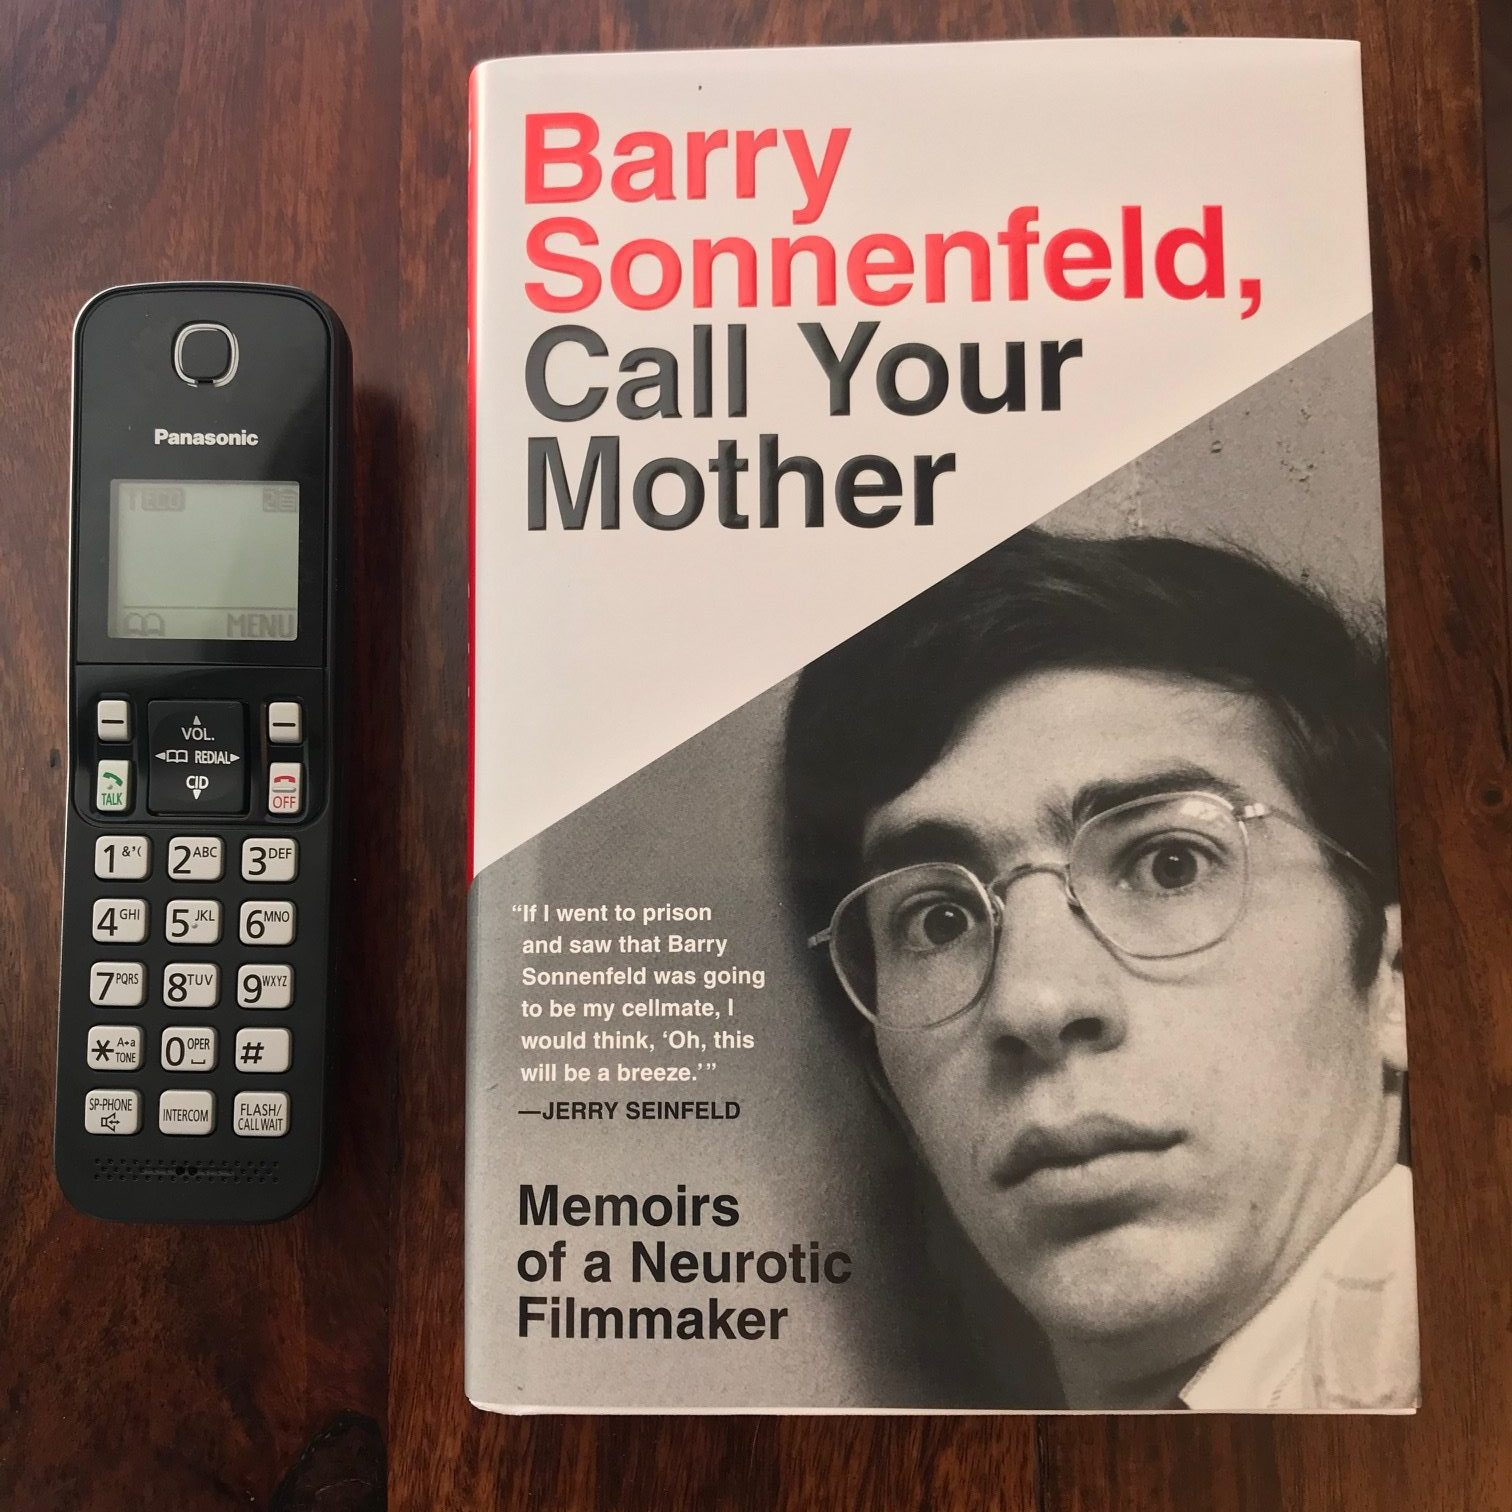 Book Review: Barry Sonnenfeld, Call Your Mother by Barry Sonnenfeld